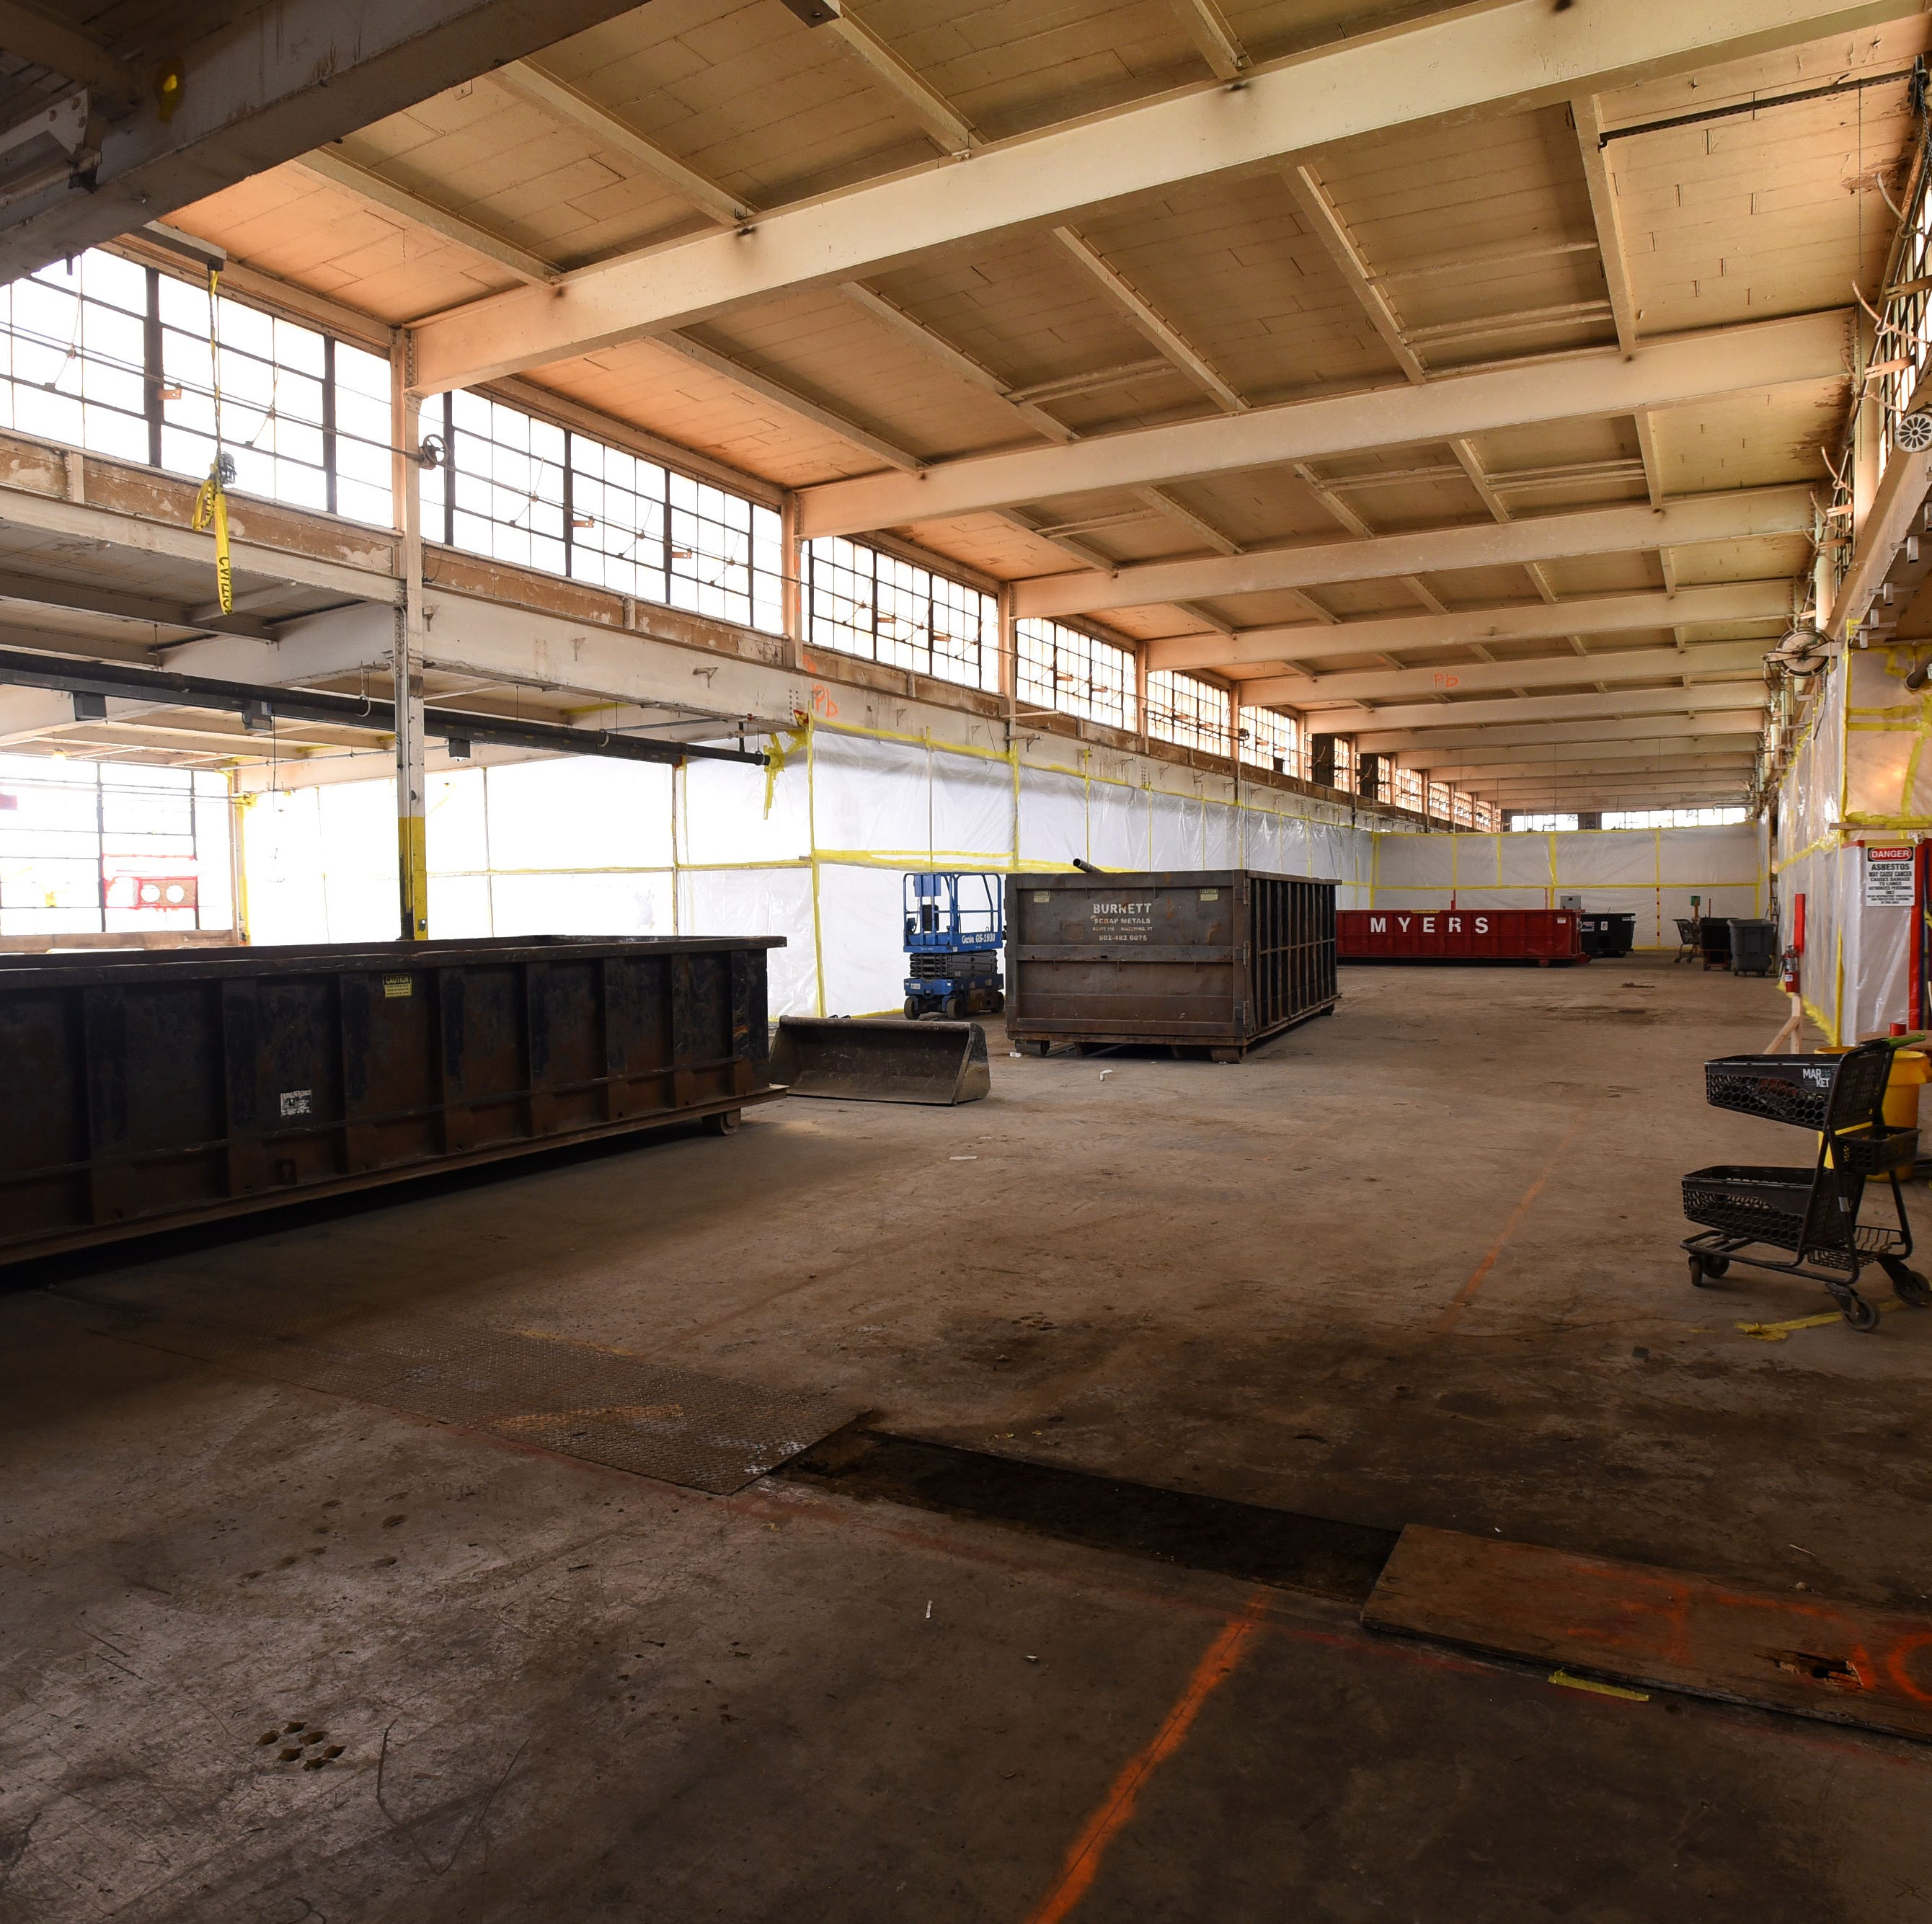 The former Blodgett Oven factory is on track to become Vermont's largest campus that cools and heats itself